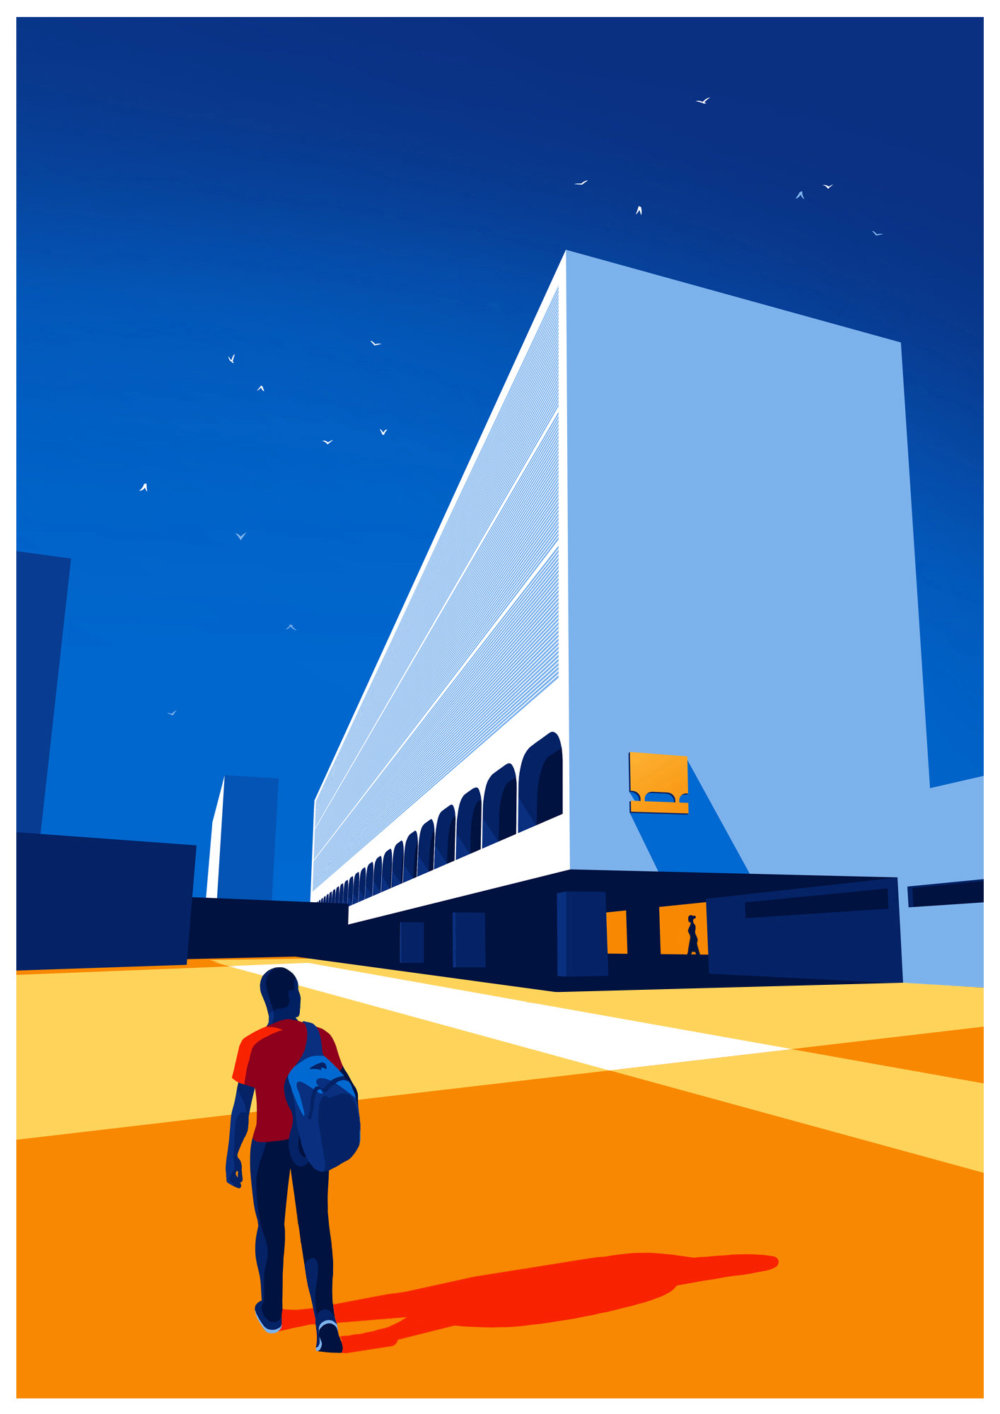 Utopia Architectural Illustration Series Featuring Oscar Niemeyers Design Lines By Levente Szabo 7